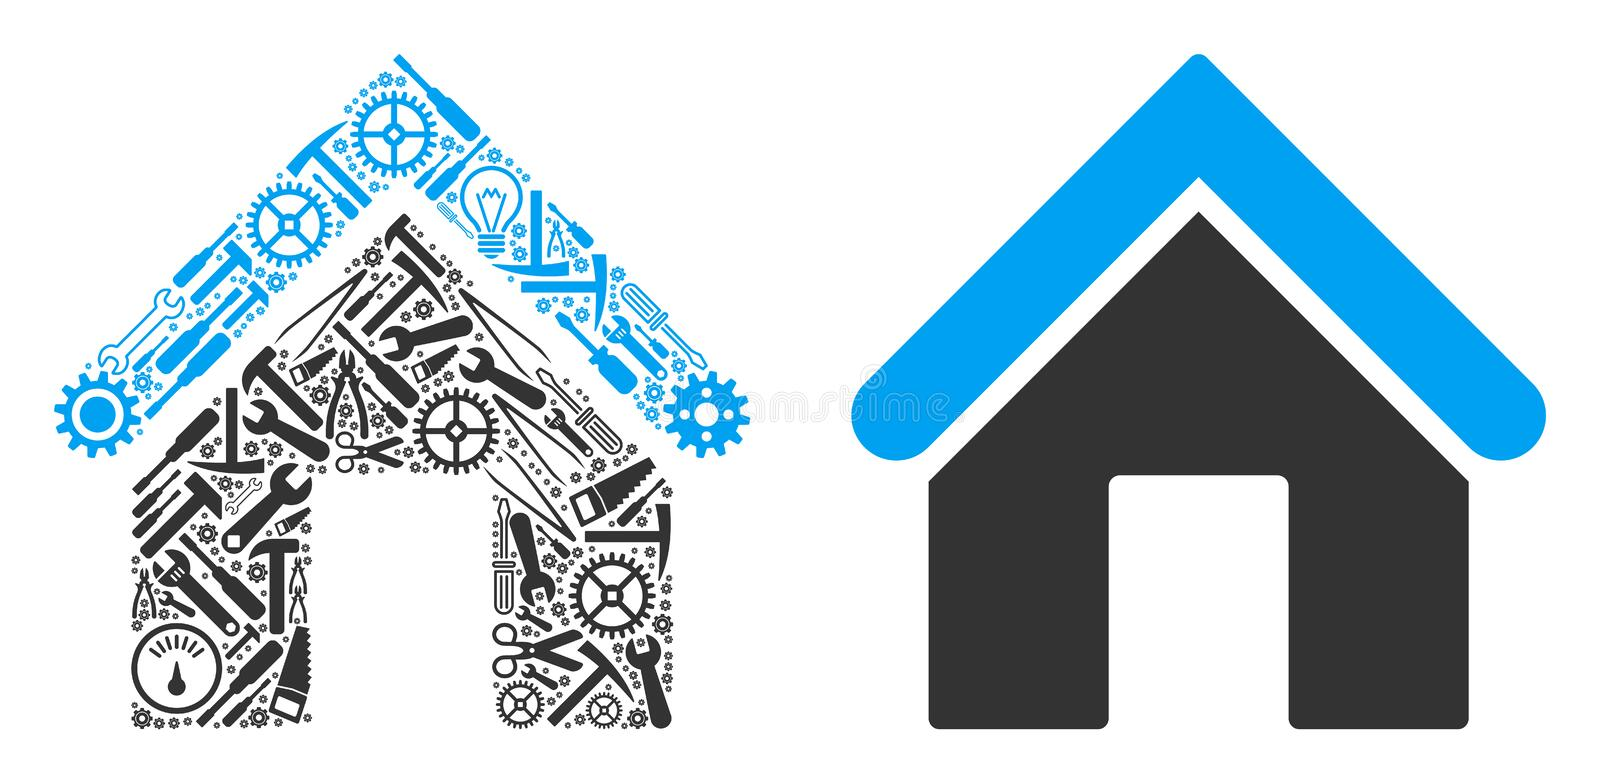 Home Mosaic of Repair Tools. Home composition of workshop instruments. Vector home icon is created of gears, spanners and other mechanical items. Concept for stock illustration